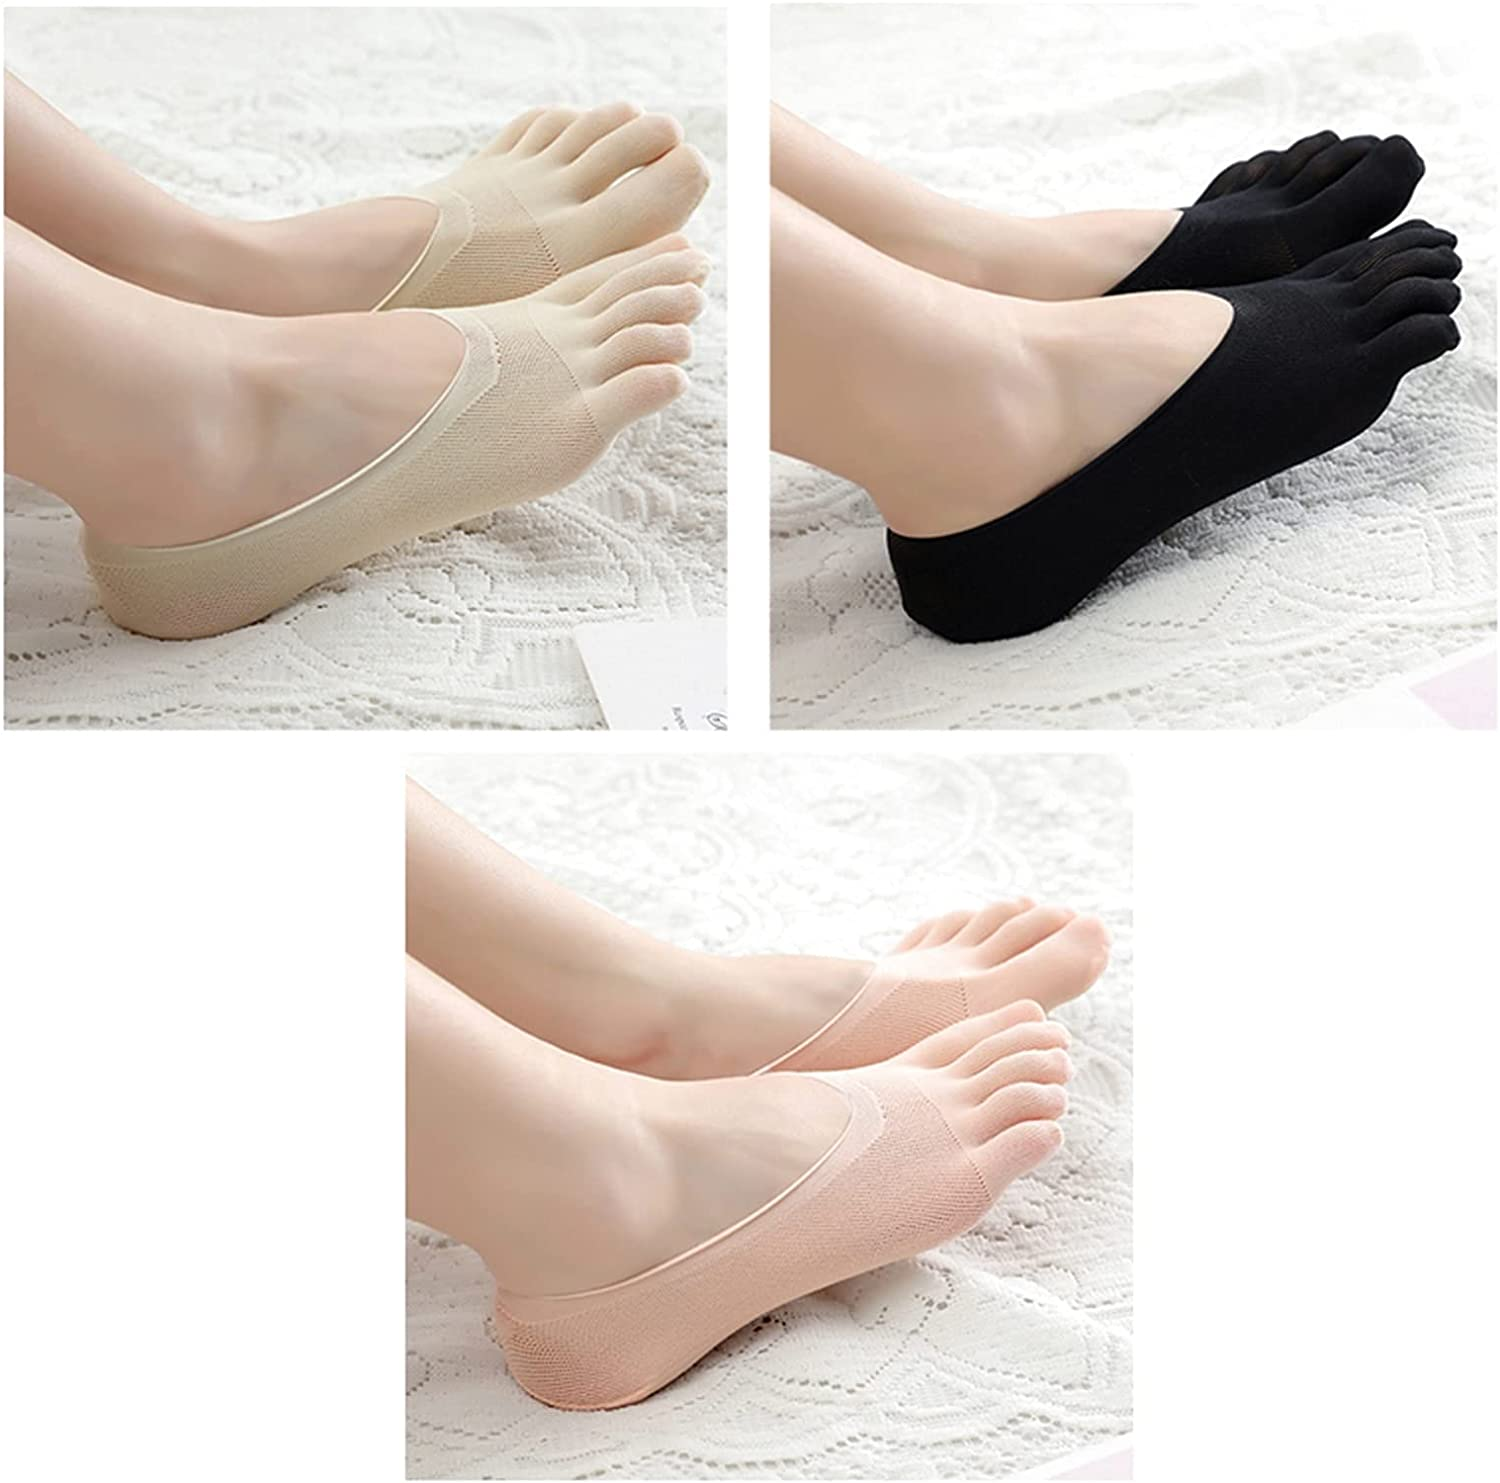 CHENGCHAO Sock Women Summer Five-Finger Socks Female Ultrathin Sock Funny Toe Invisible Silicone Anti-Skid Anti-Friction Movement (Color : Skin Black Pink, Size : 1 Pair)